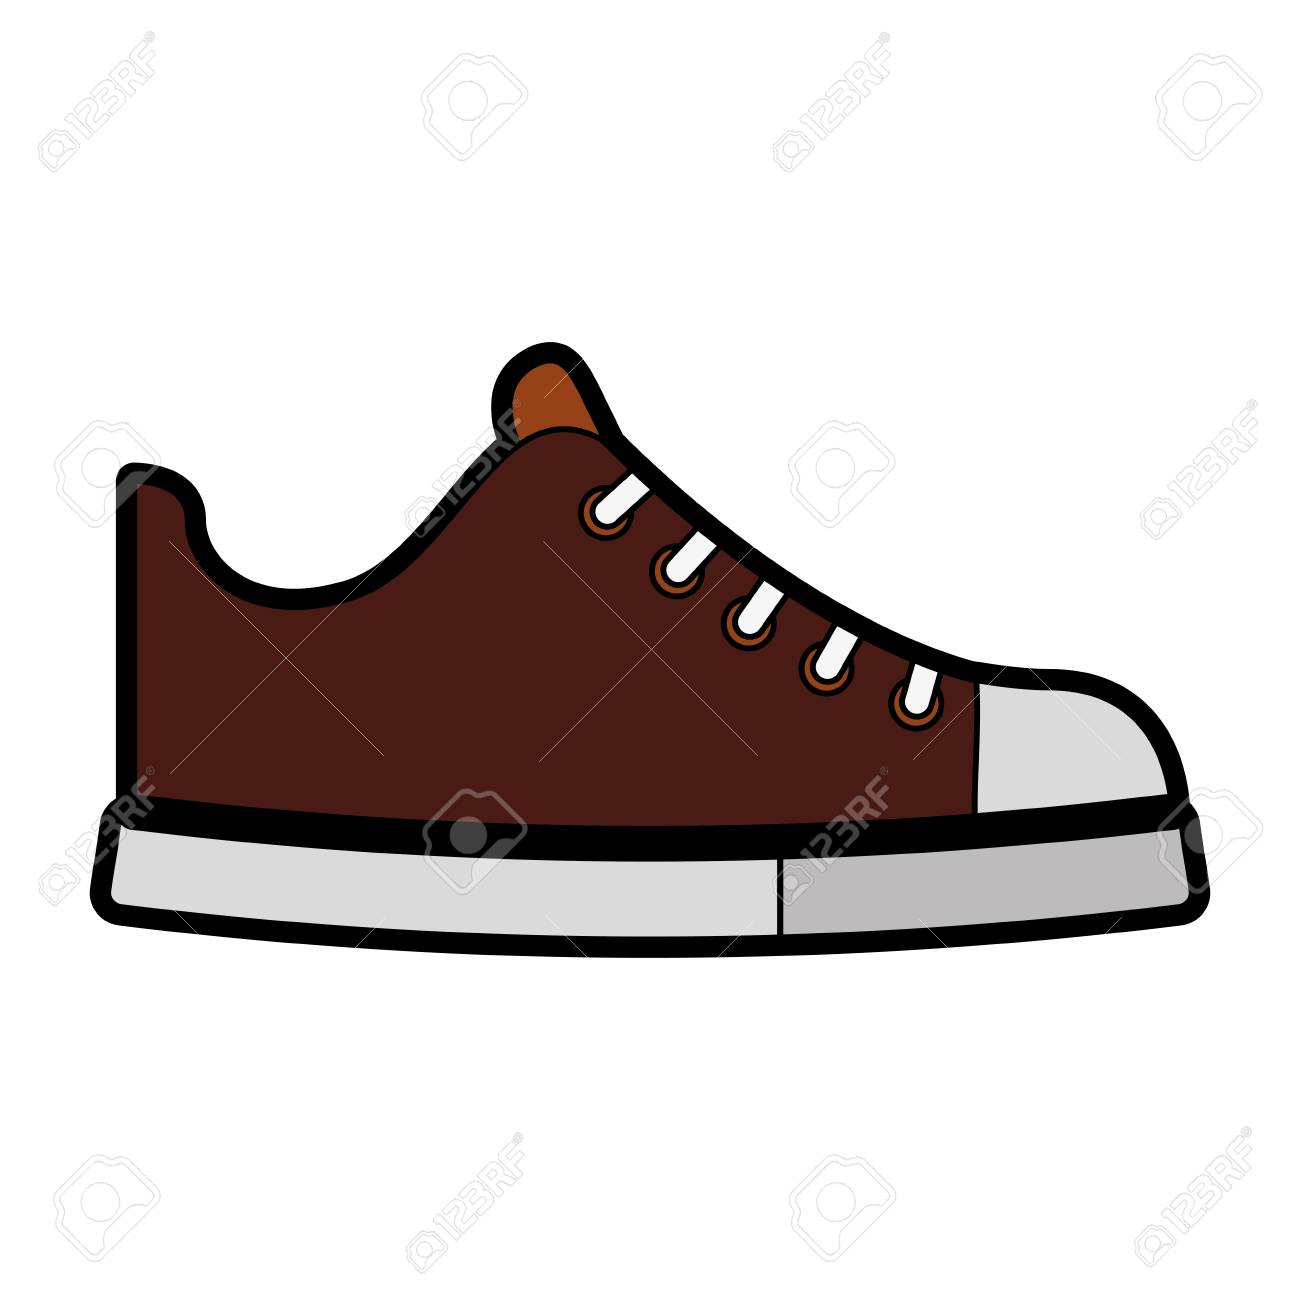 cute brown shoe cartoon vector graphic design royalty free cliparts rh 123rf com victor shoemaker missing victor shoemaker